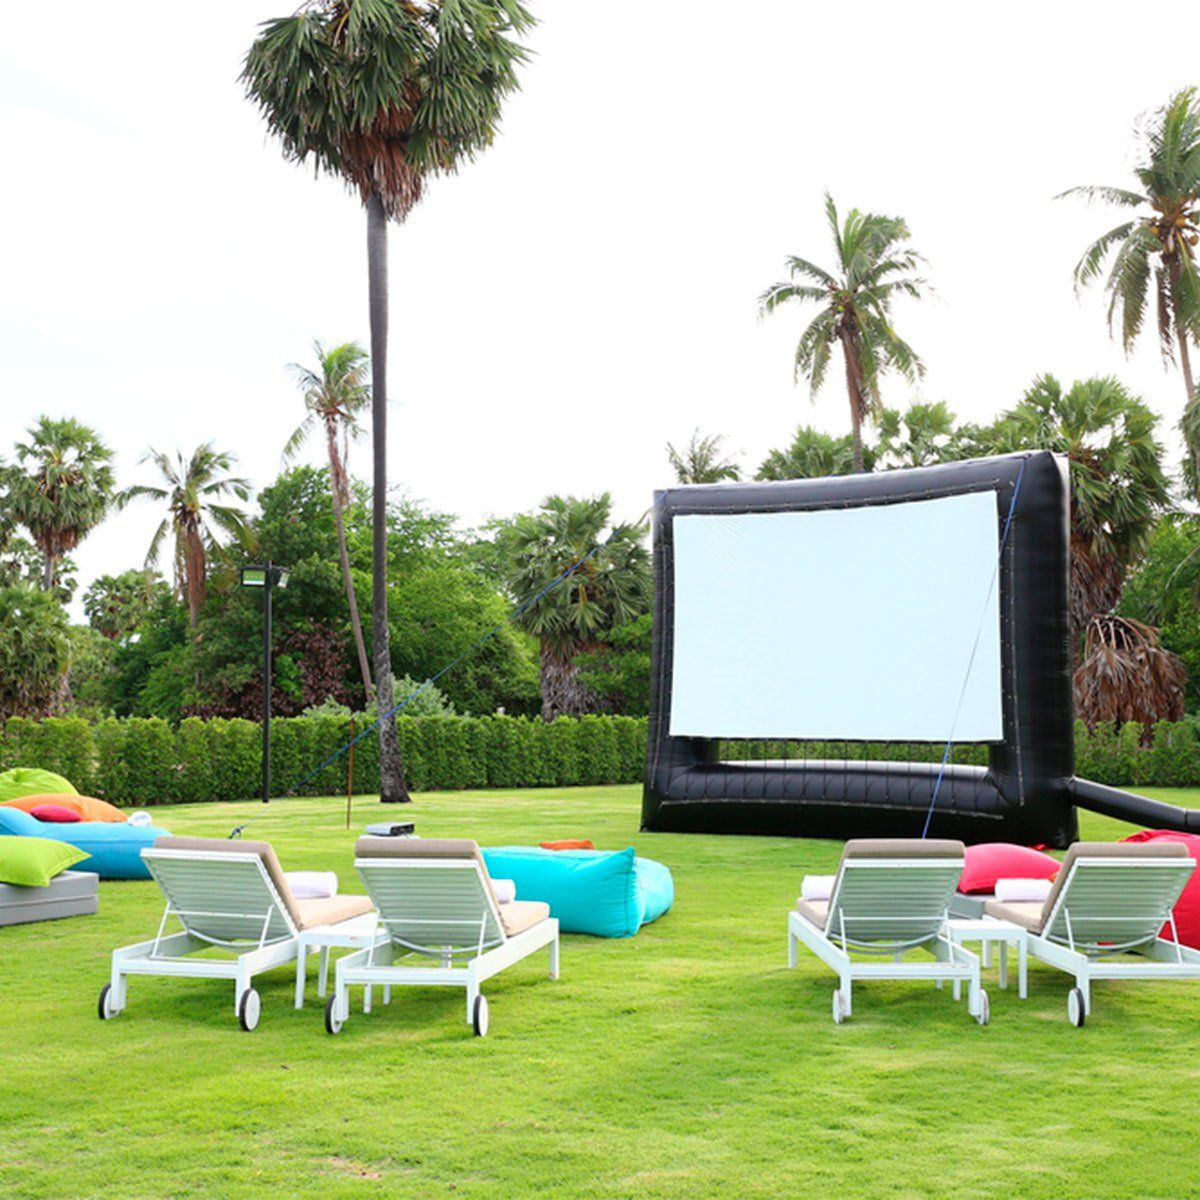 What You Need For A DIY Backyard Movie Theater